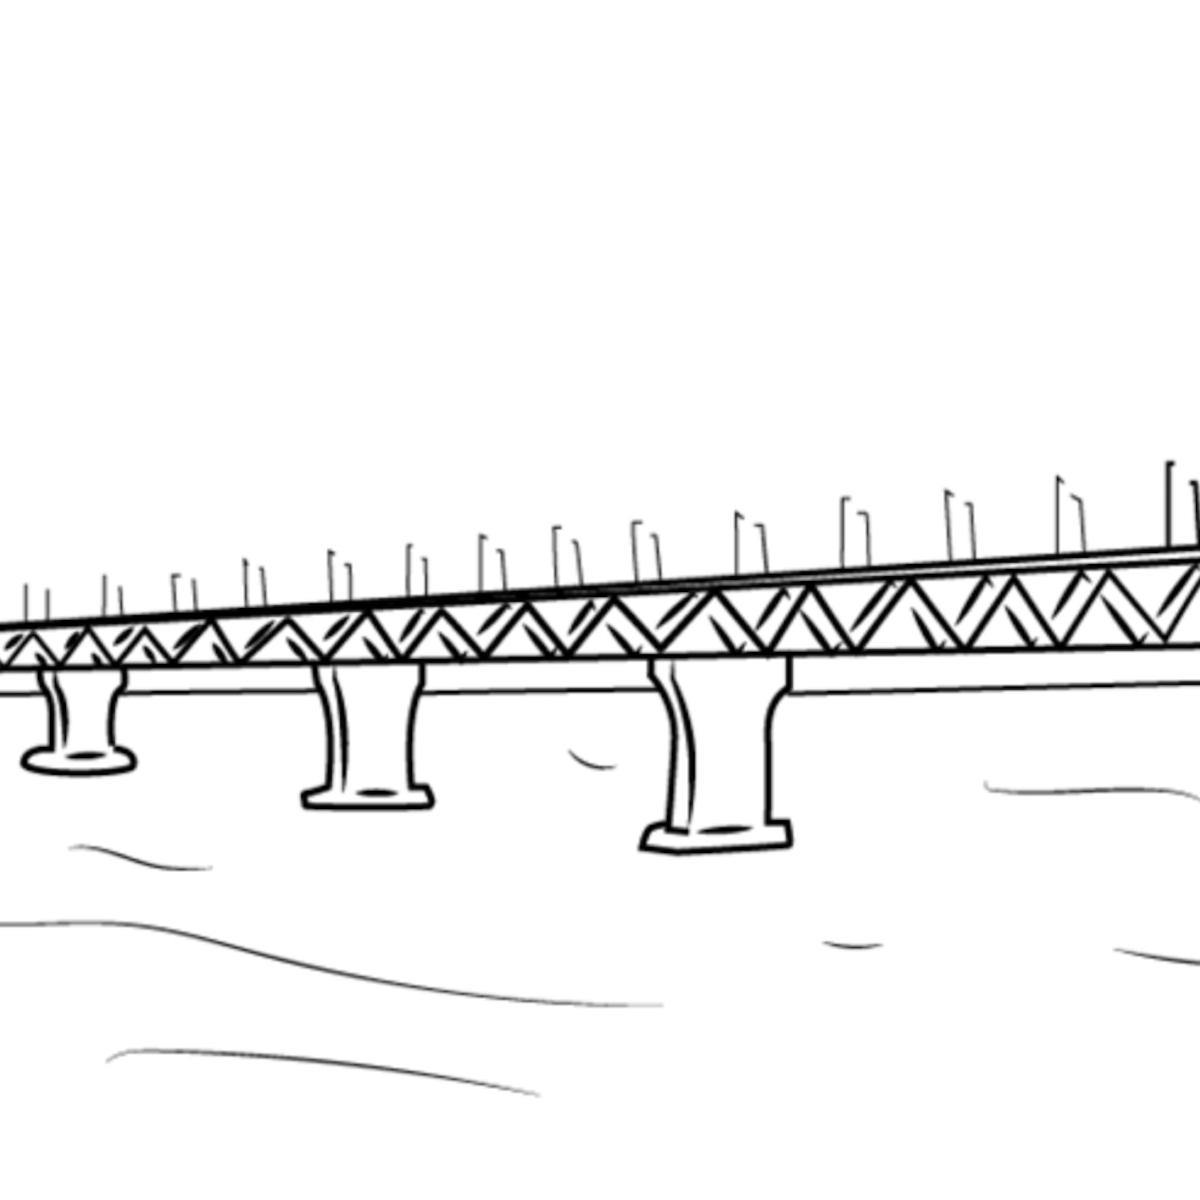 Drawing of a street bridge